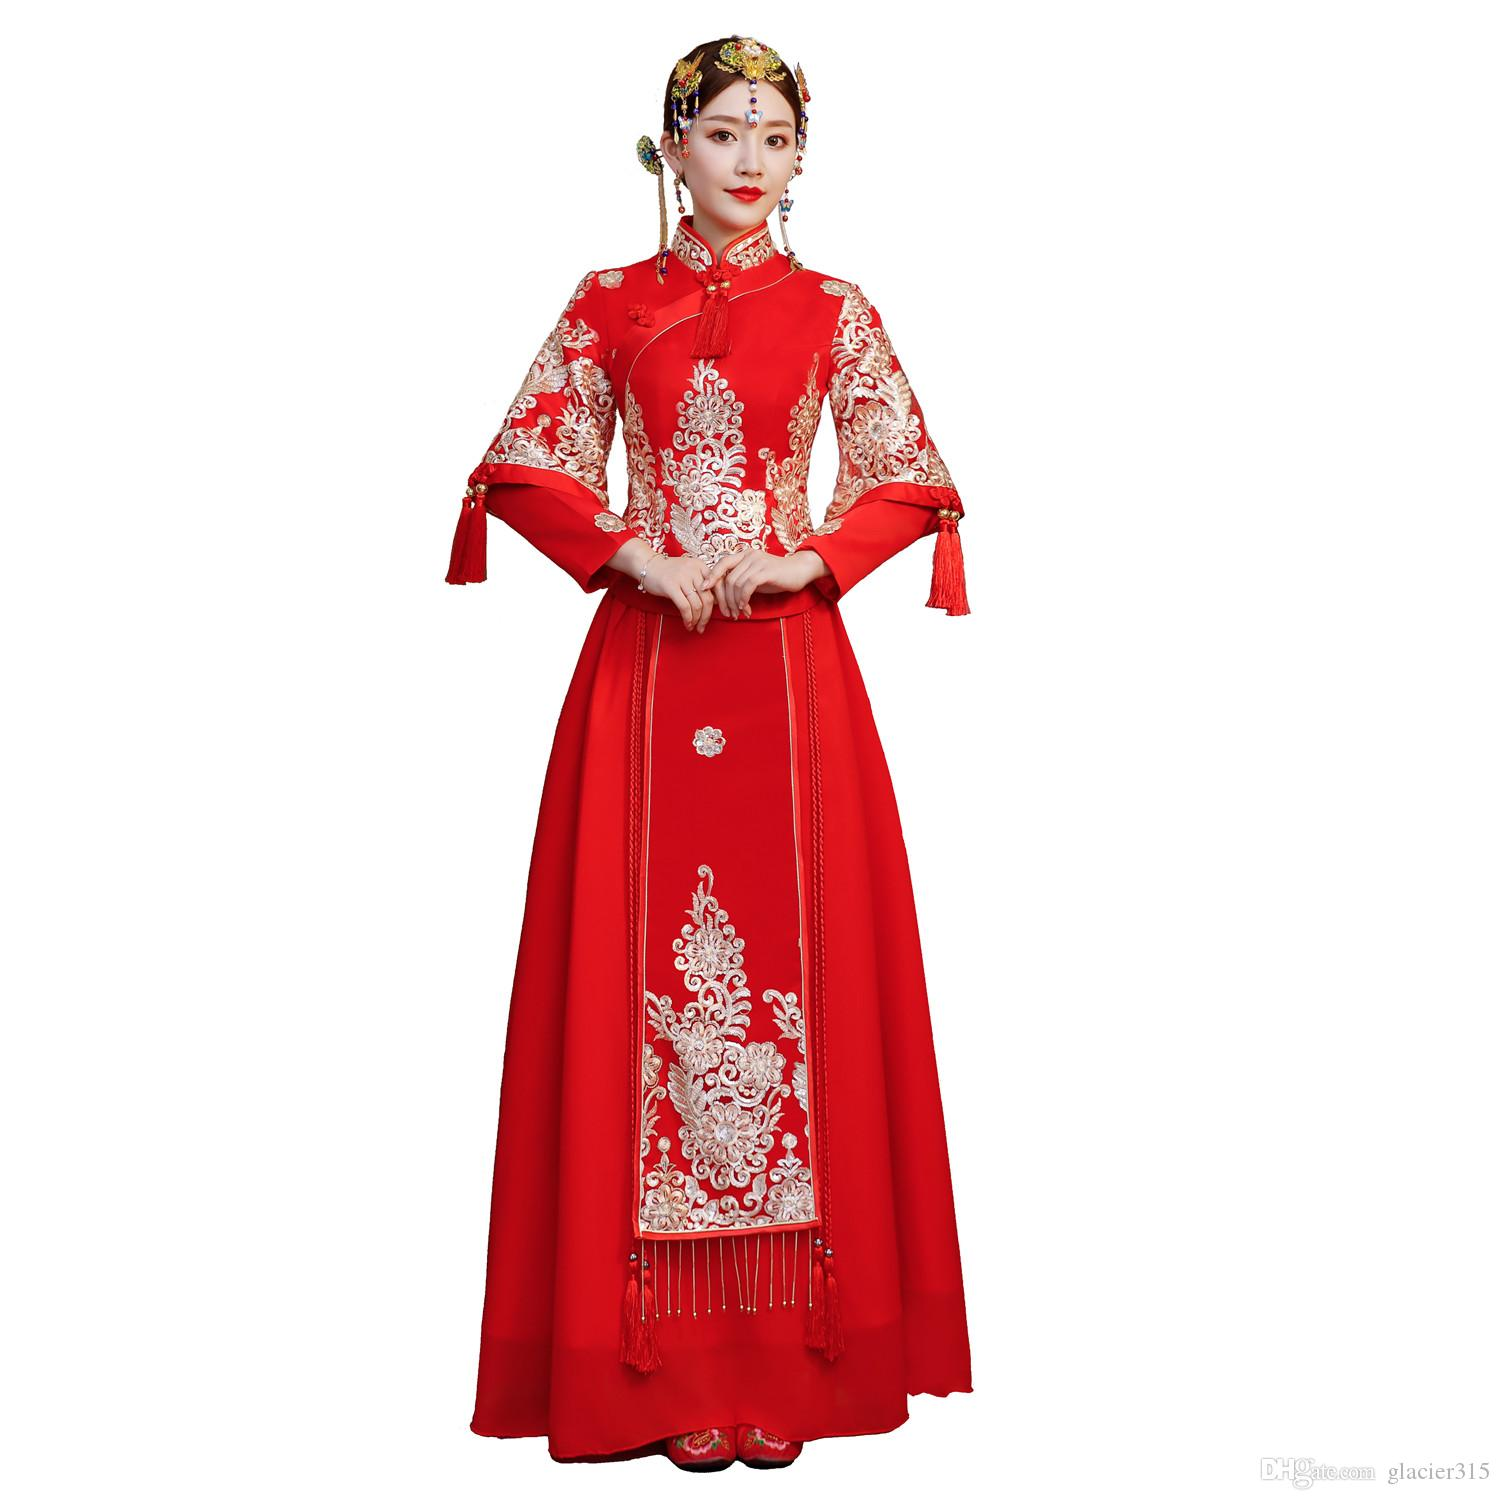 cfa53fc0d Shanghai Story 2018 XiuHe Take Bridal Gown Clothes Chinese Red Dress  Traditional Chinese Clothing For Women Chinese Red Wedding Dress Chinese  Style Clothing ...